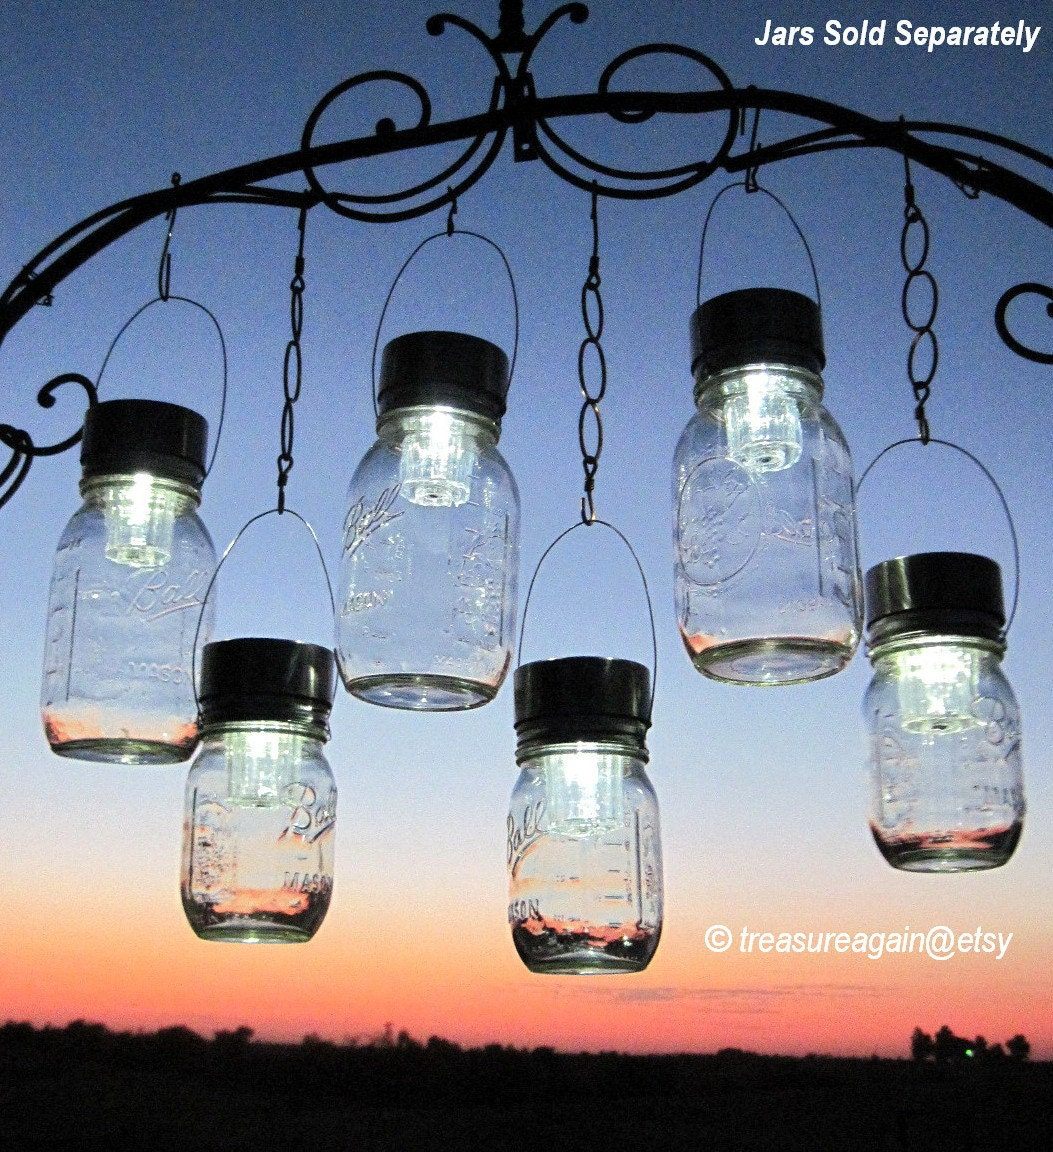 Outdoor event lighting mason jar solar lights wedding lights zoom arubaitofo Gallery